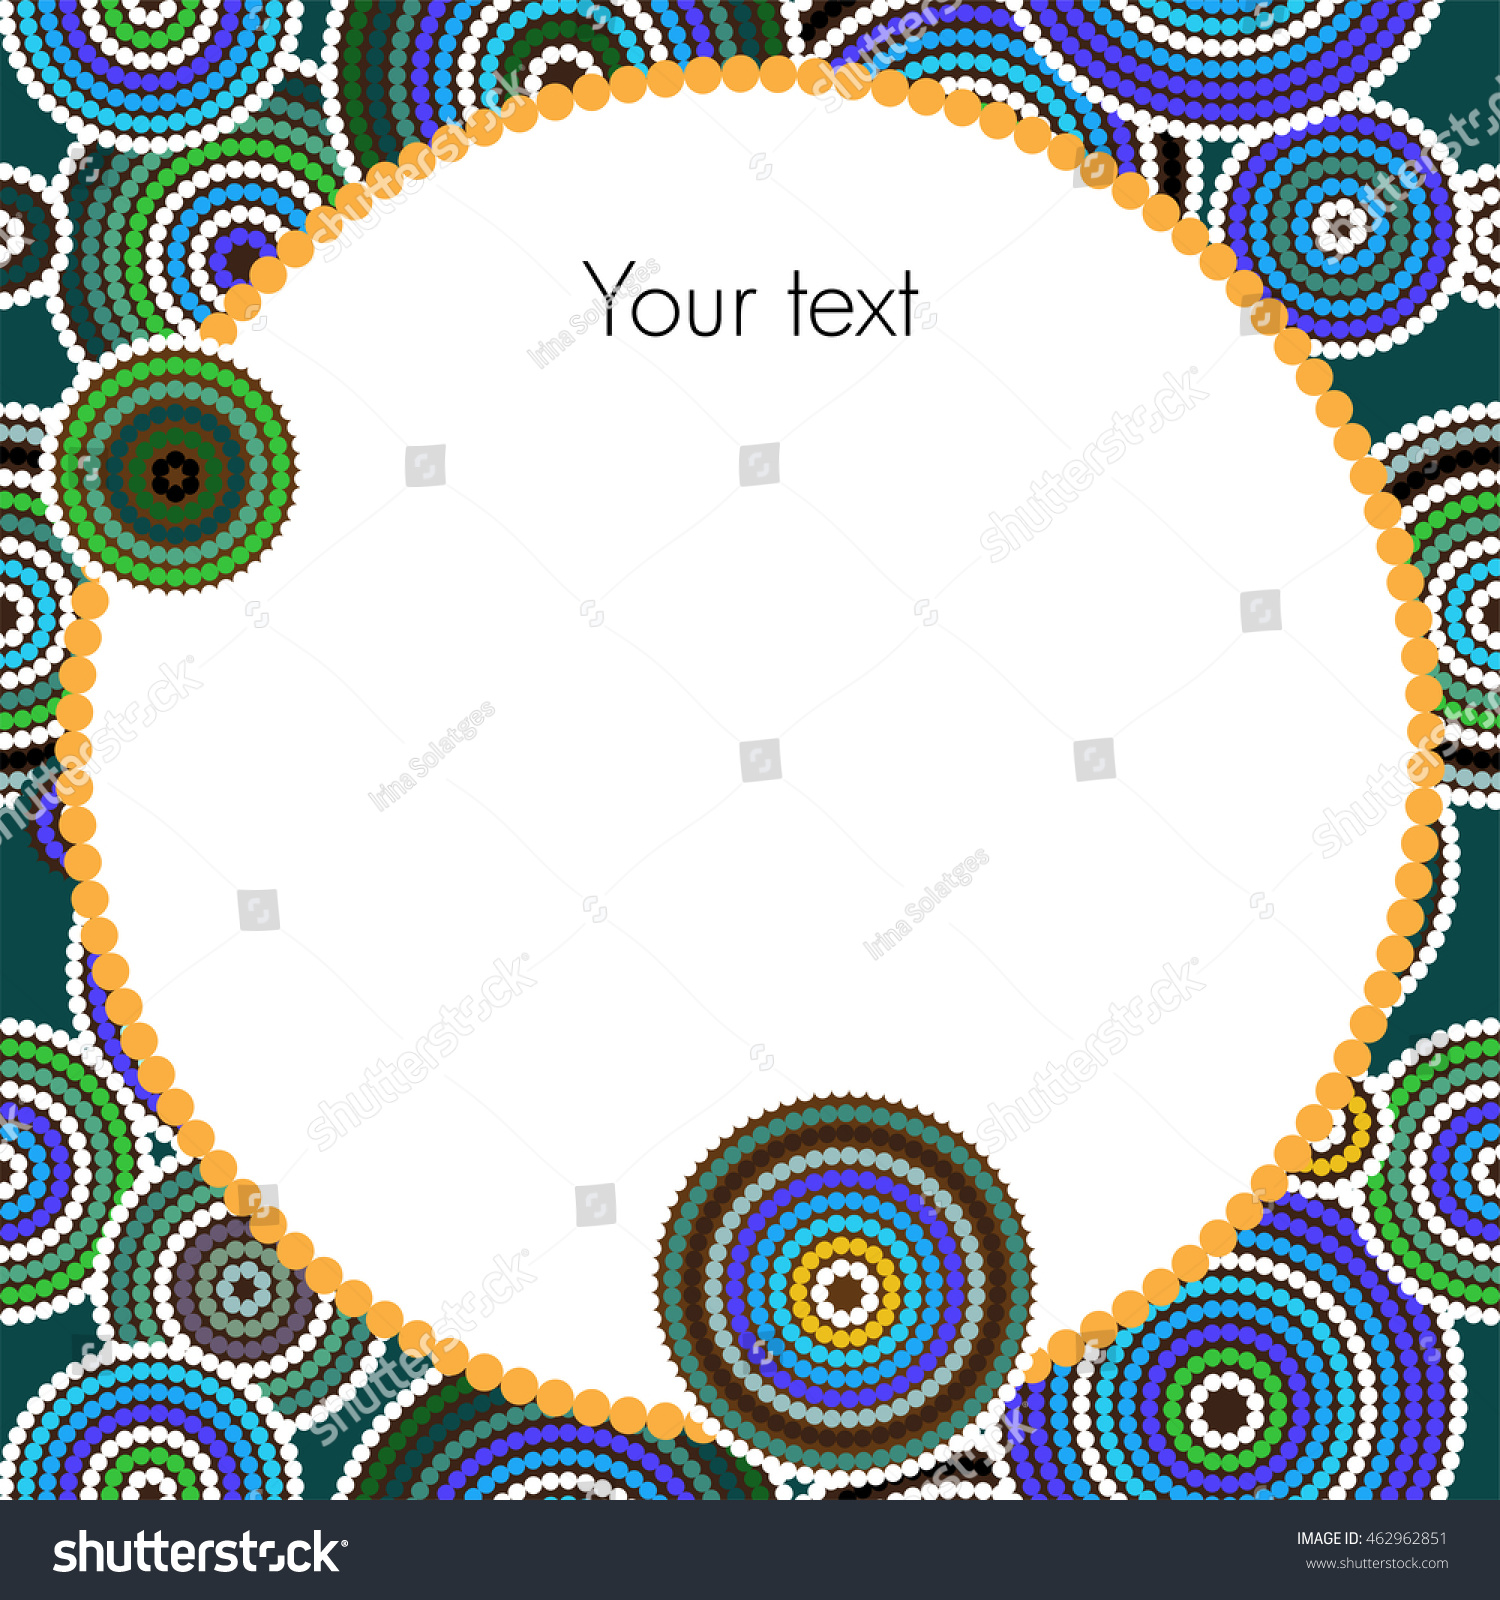 Aboriginal art vector seamless background chiropractic assistant aboriginal art vector background stock vector 462962851 shutterstock stock vector aboriginal art vector background 462962851 aboriginal toneelgroepblik Image collections